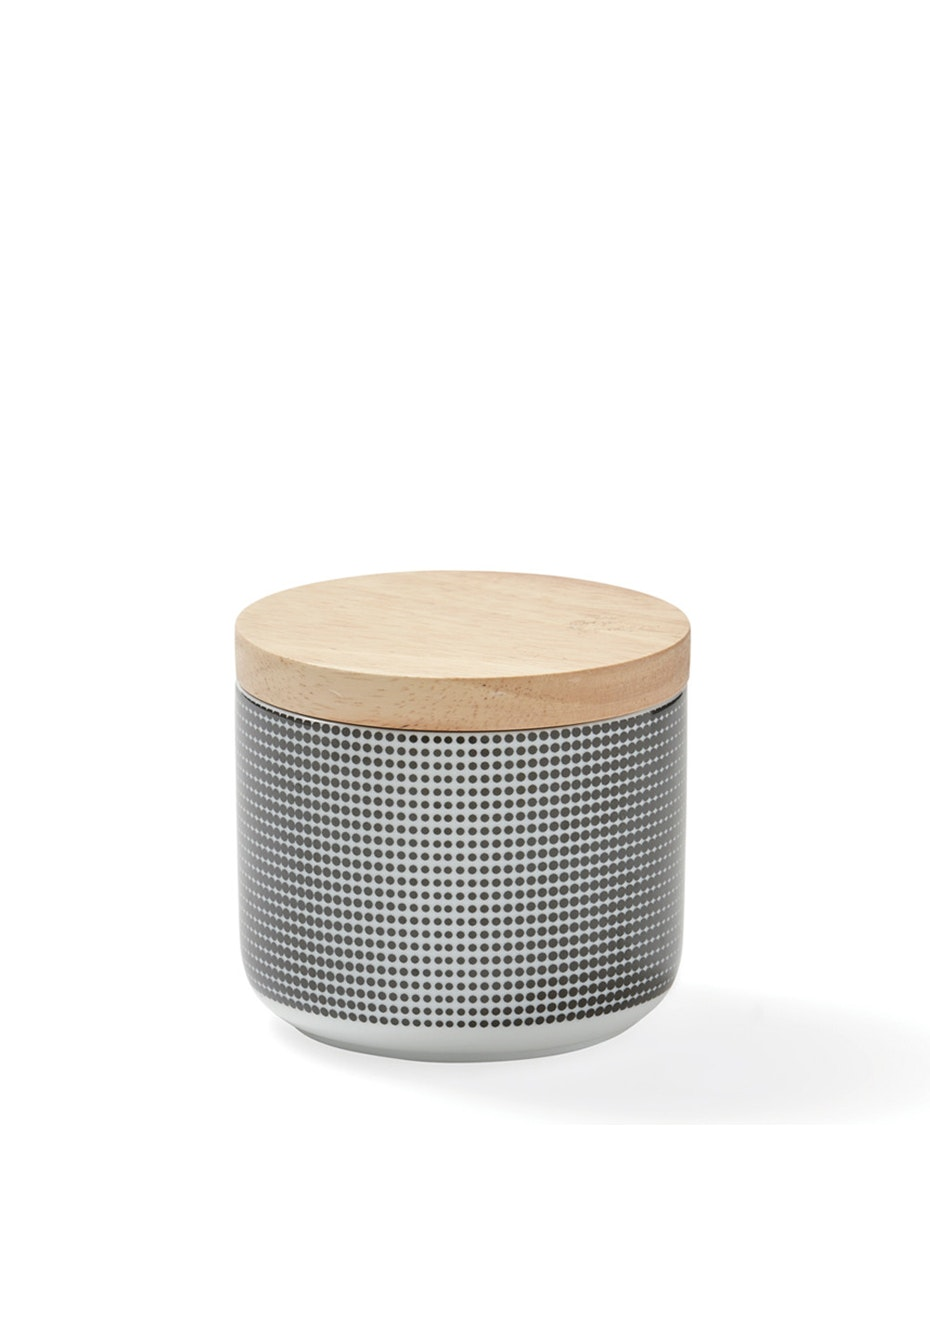 Me & My Trend - Optical Illusion Canister